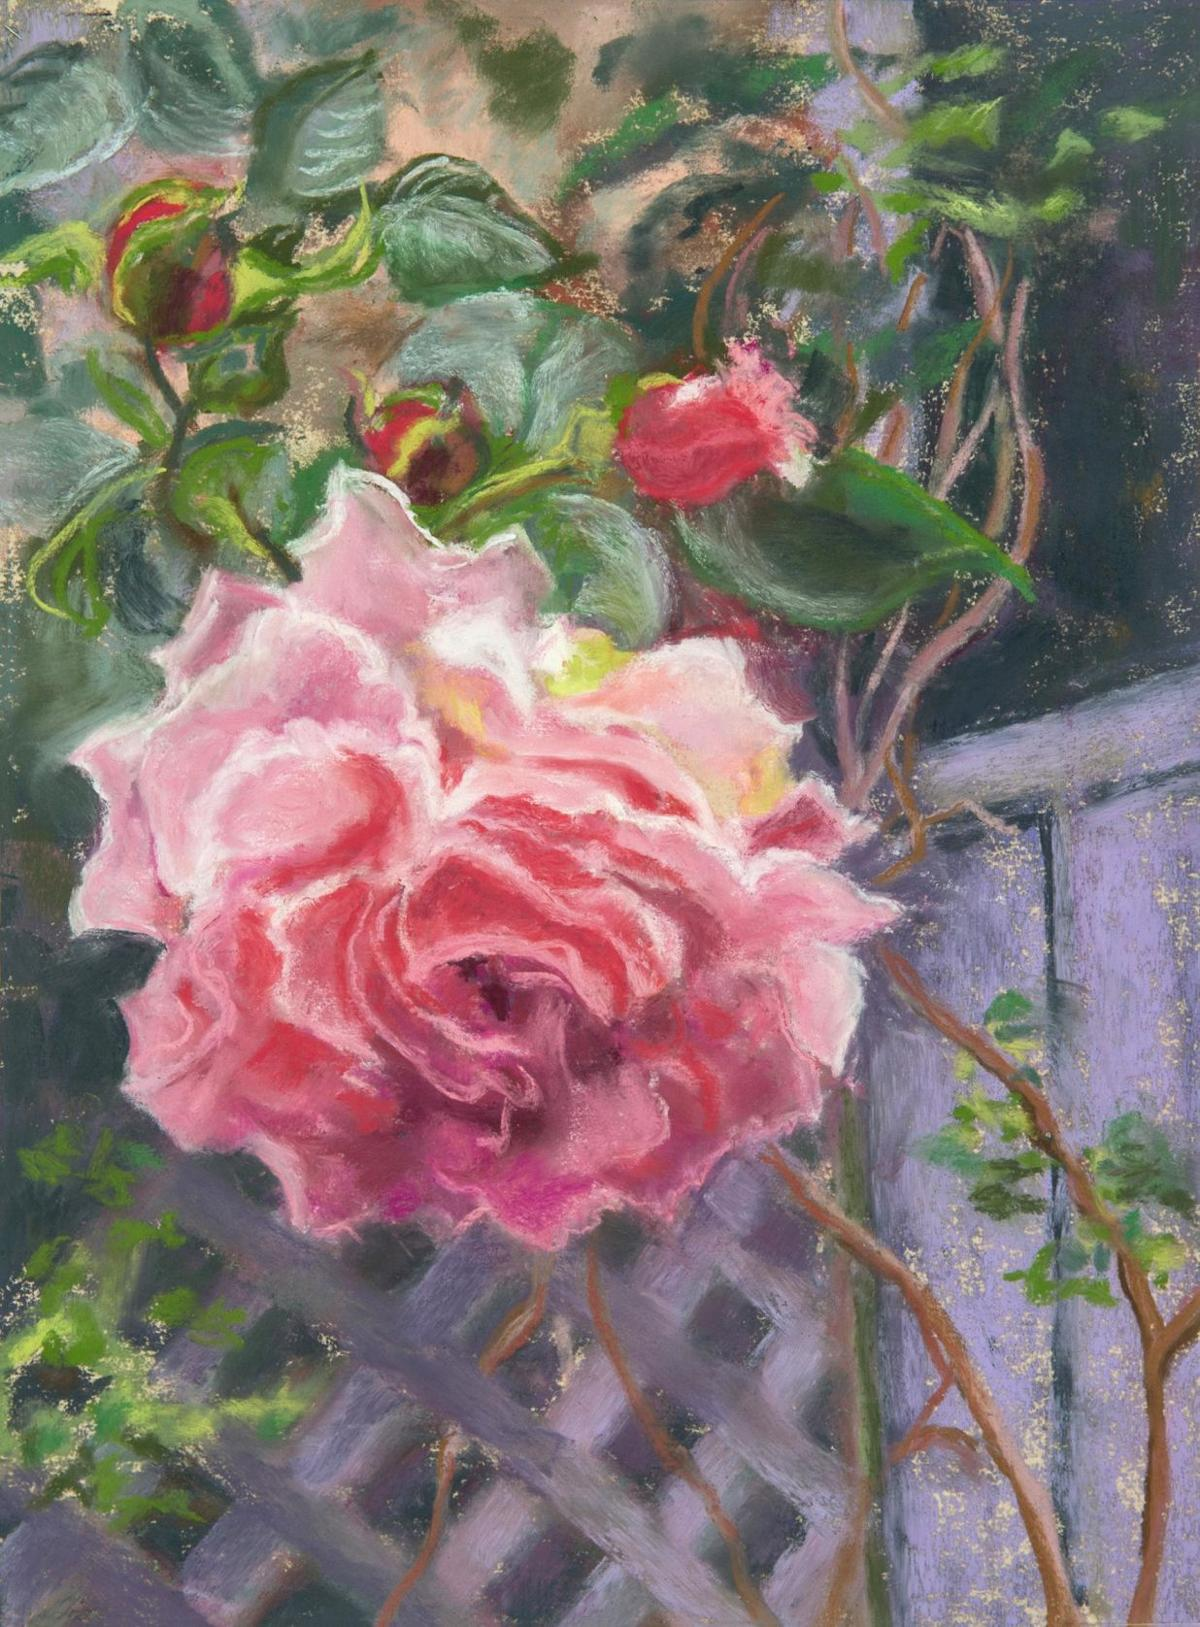 Nature-themed pastels, sculpture featured in David M. Hunt Library show in Falls Village